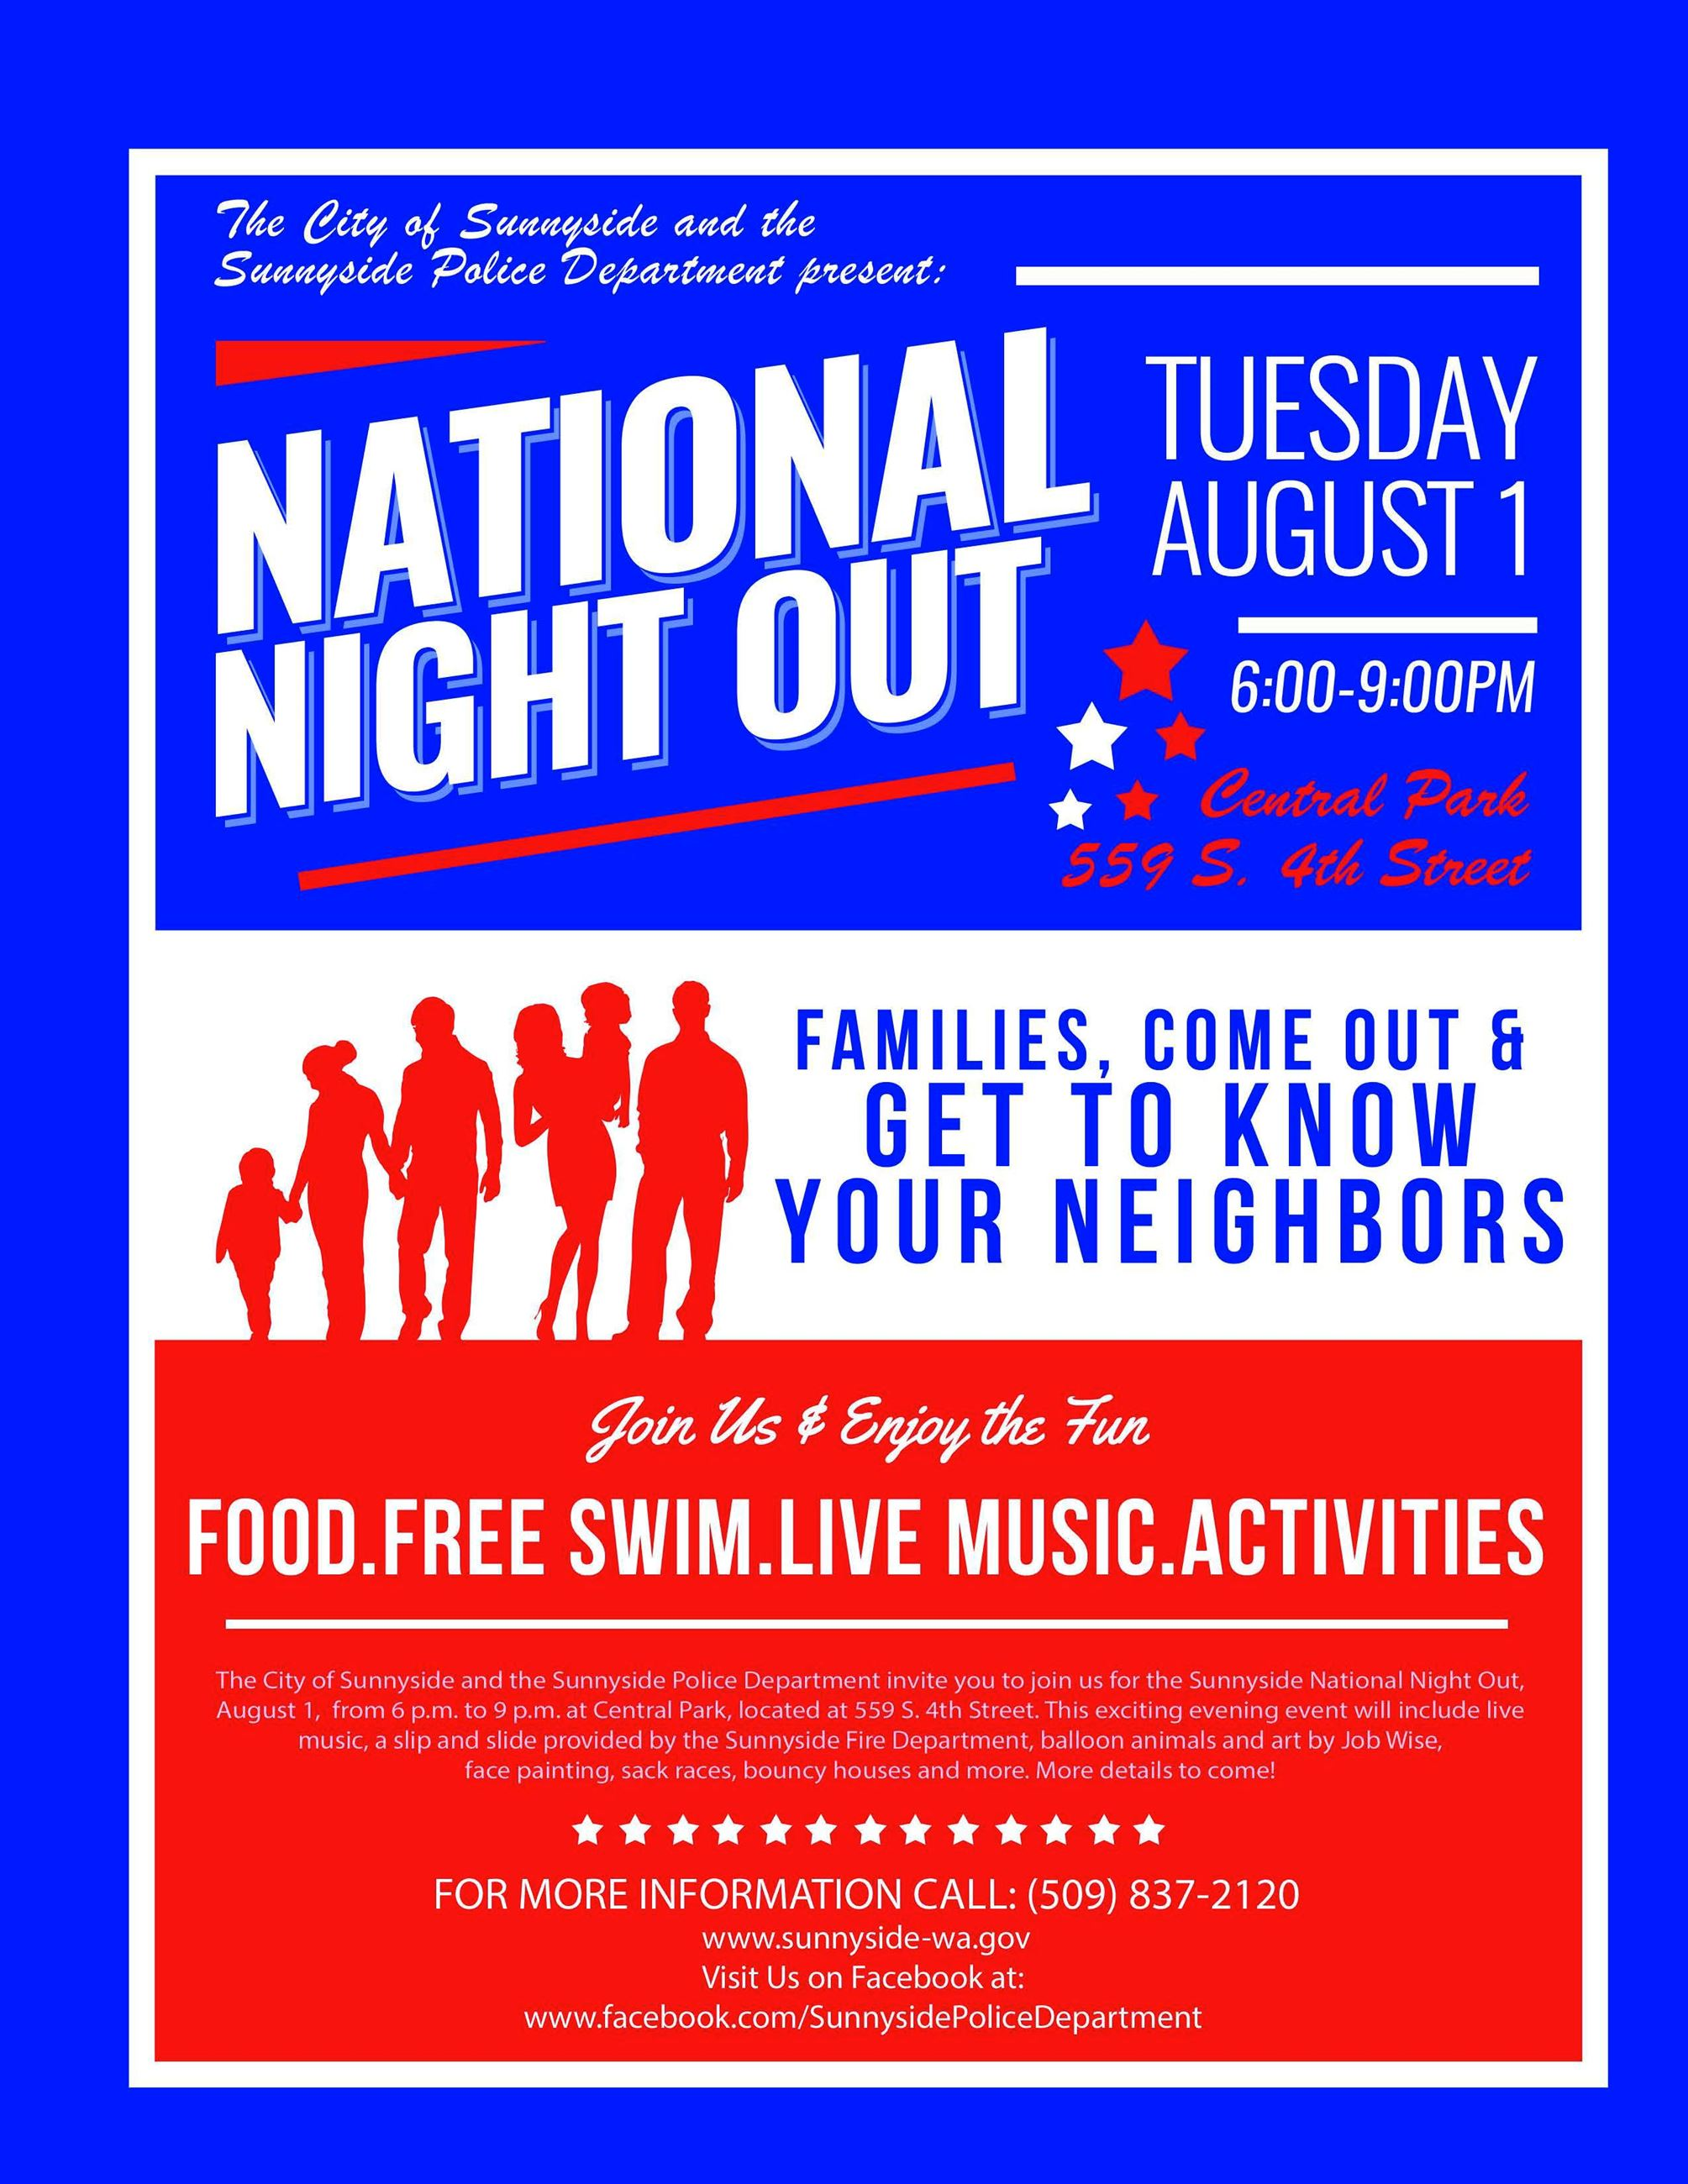 National Night Out Flyer 2017